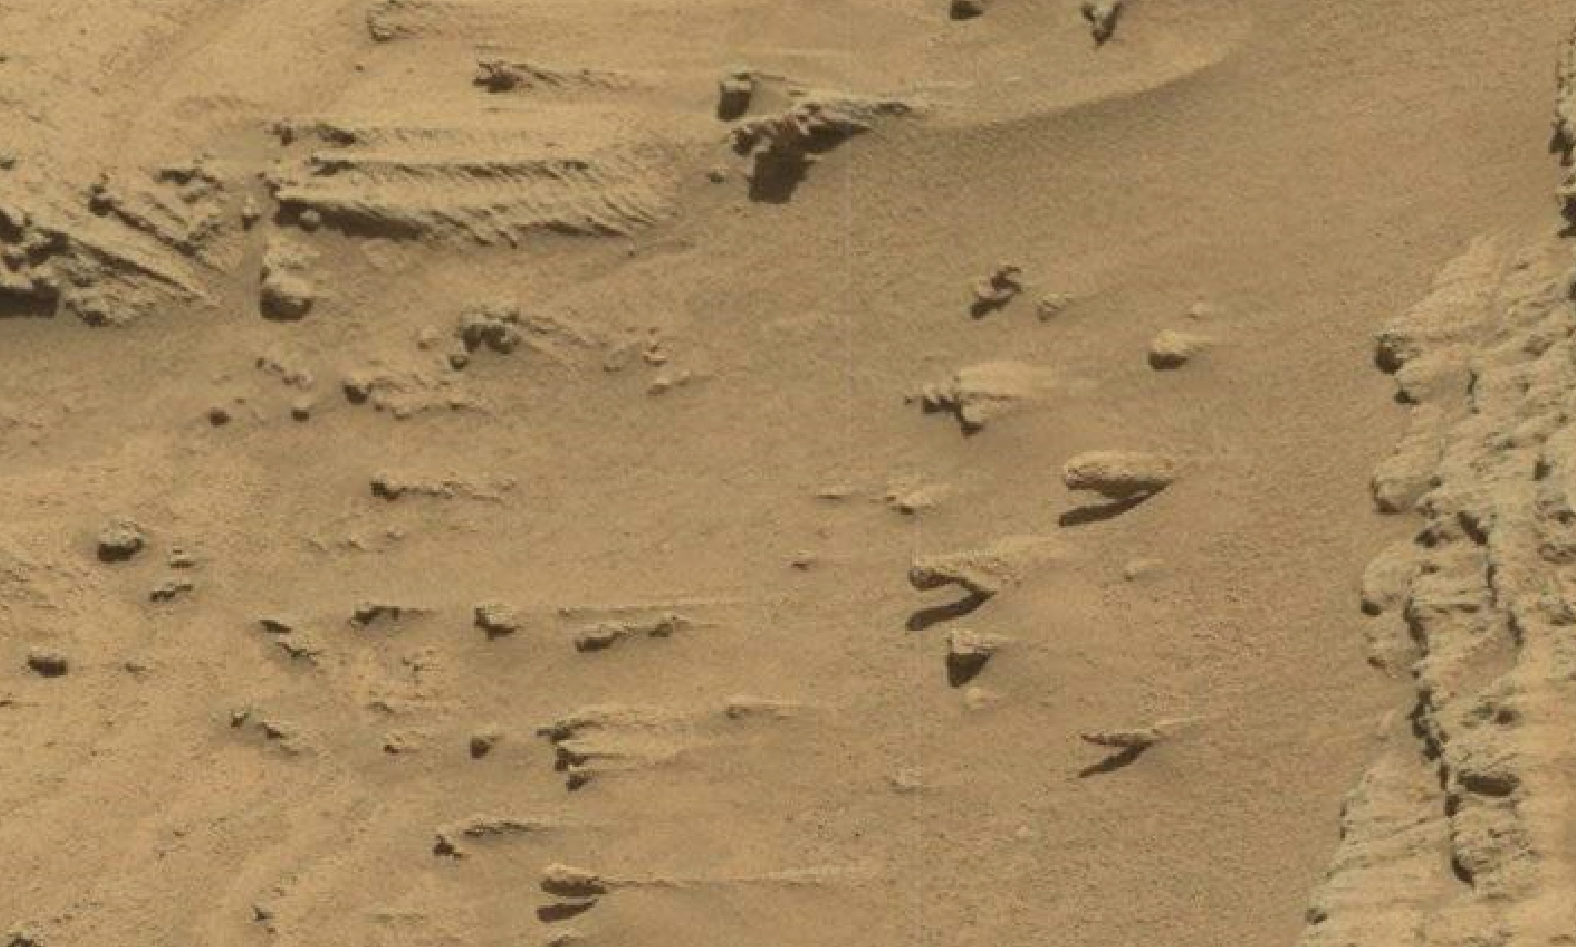 mars sol 1293 anomaly-artifacts 5 was life on mars